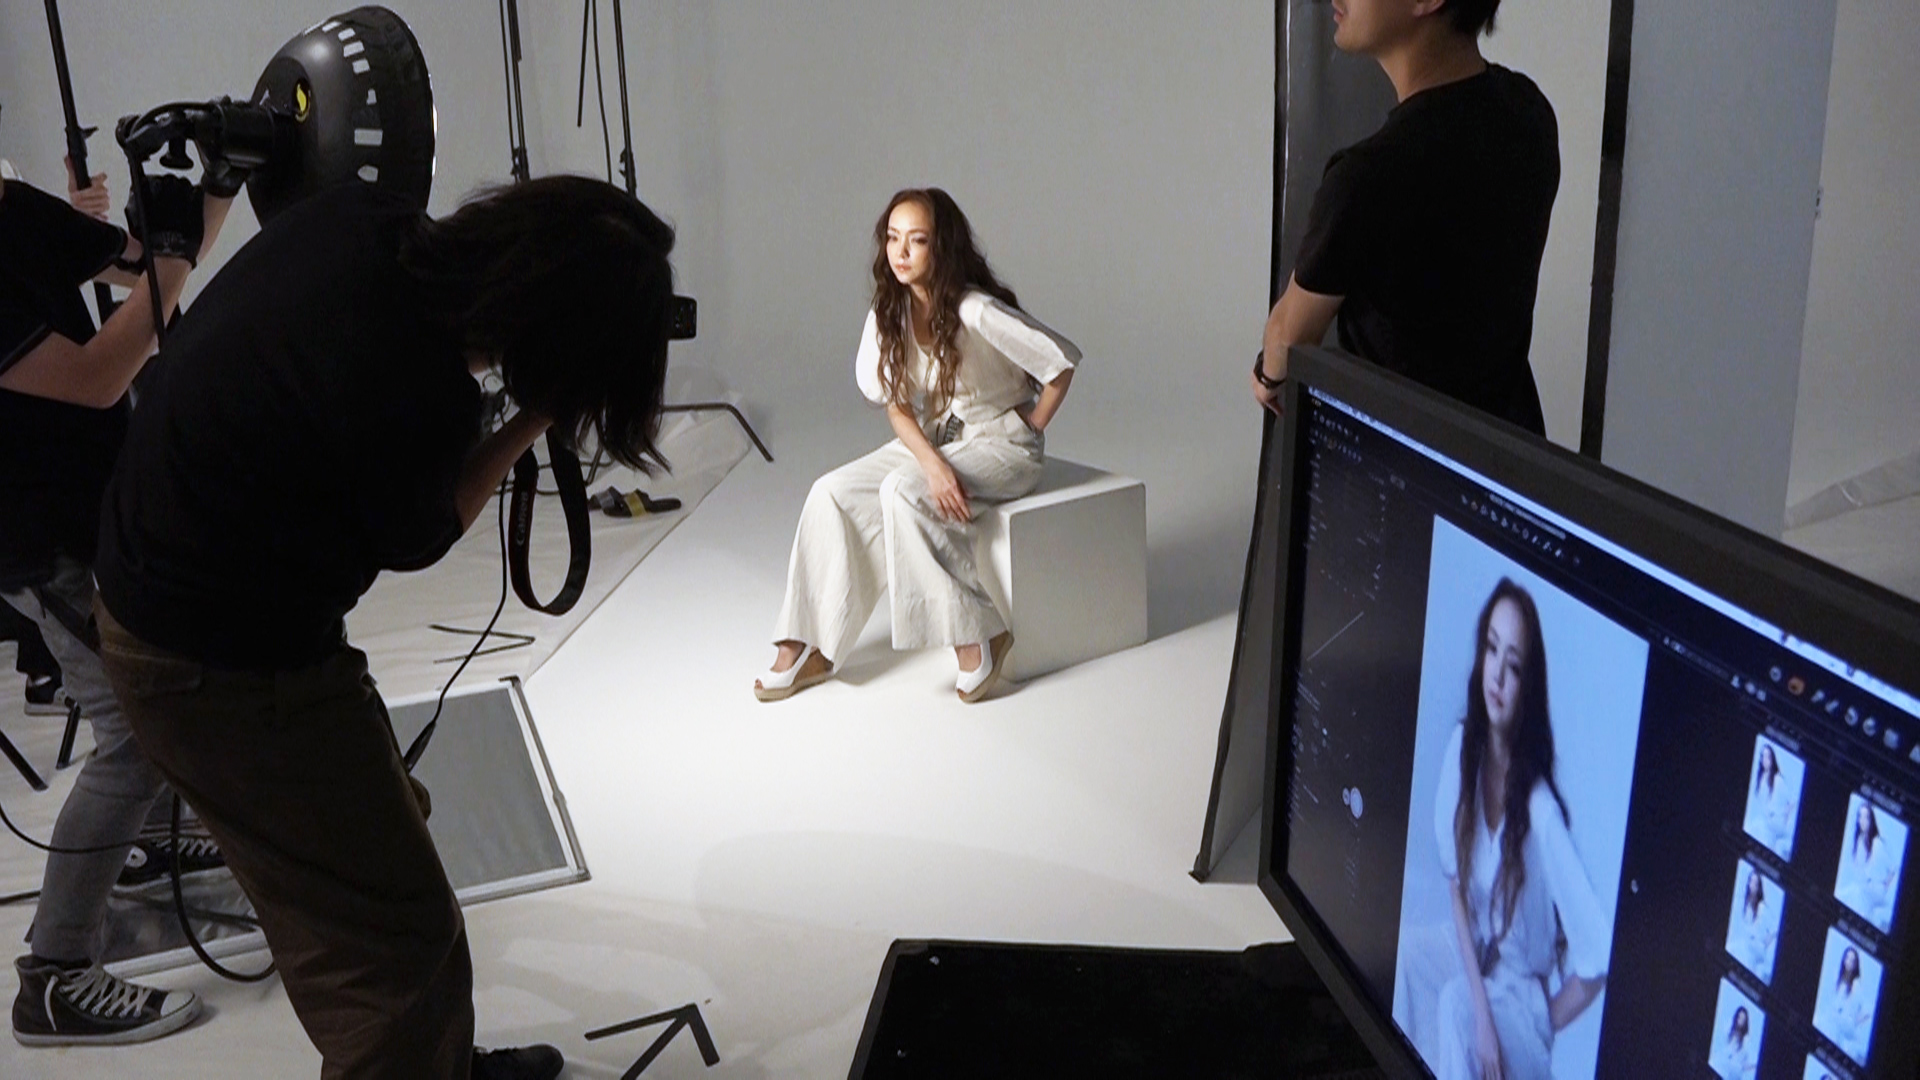 『Hulu_Documenary of Namie Amuro』エピソード8